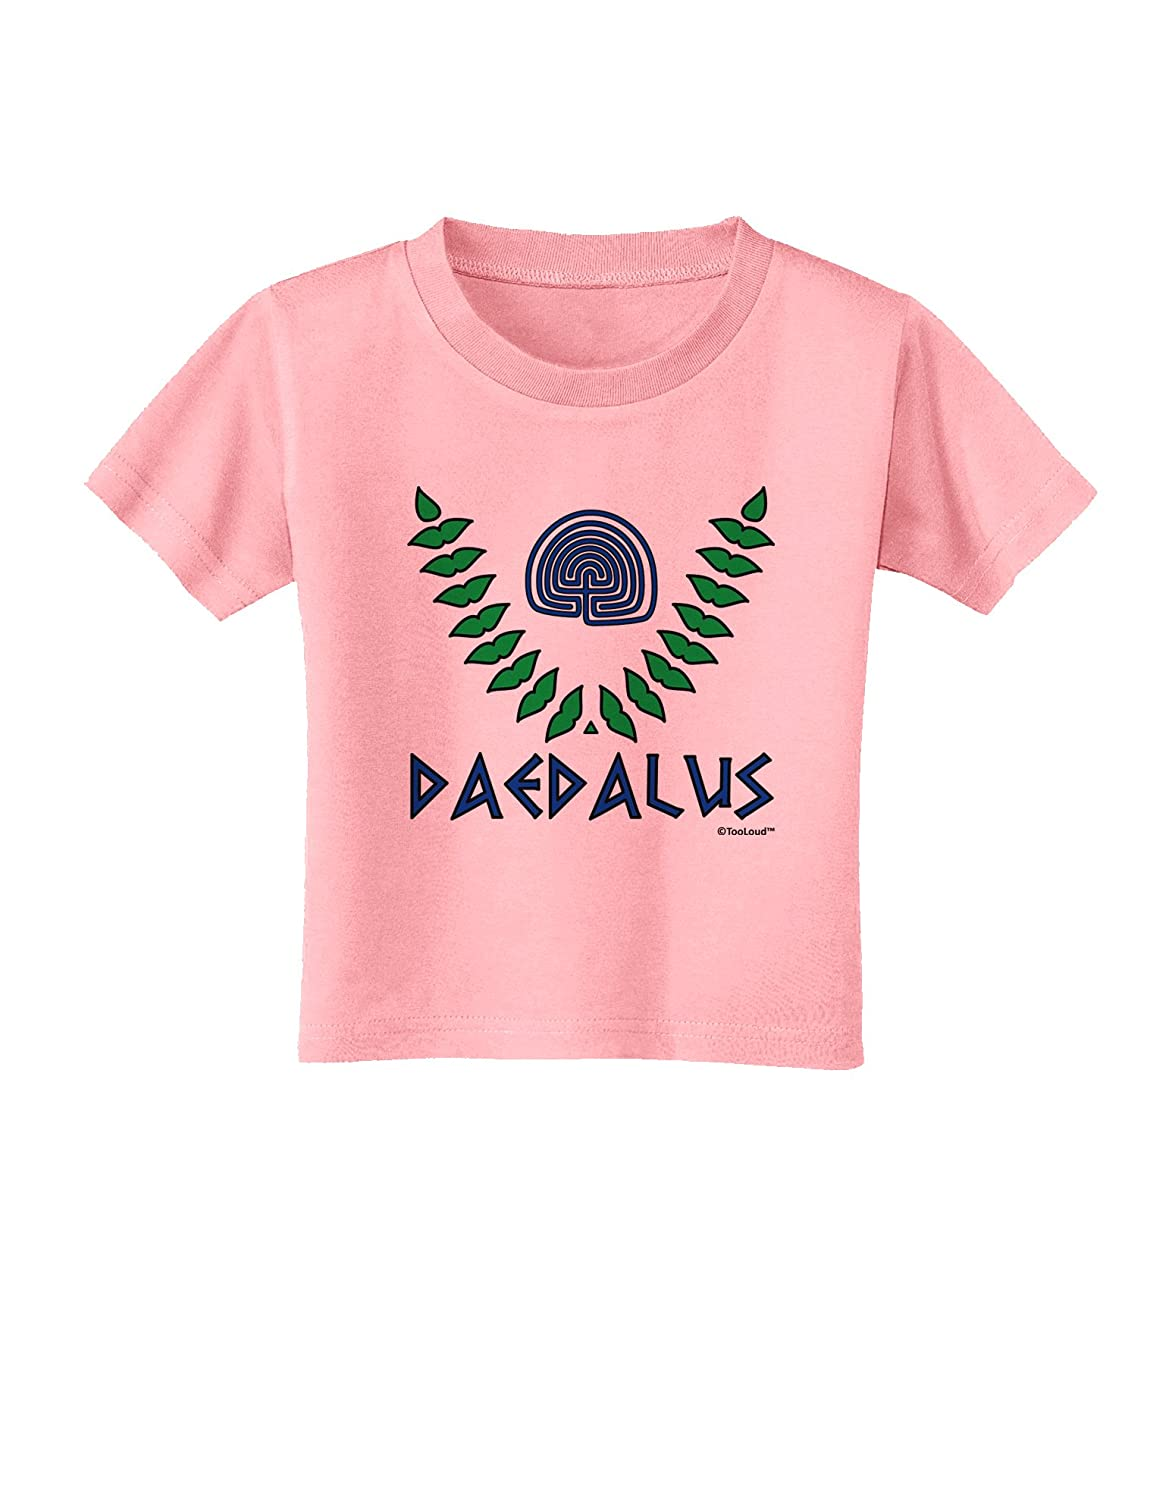 Daedalus Greek Mythology Color Toddler T-Shirt TooLoud Labyrinth